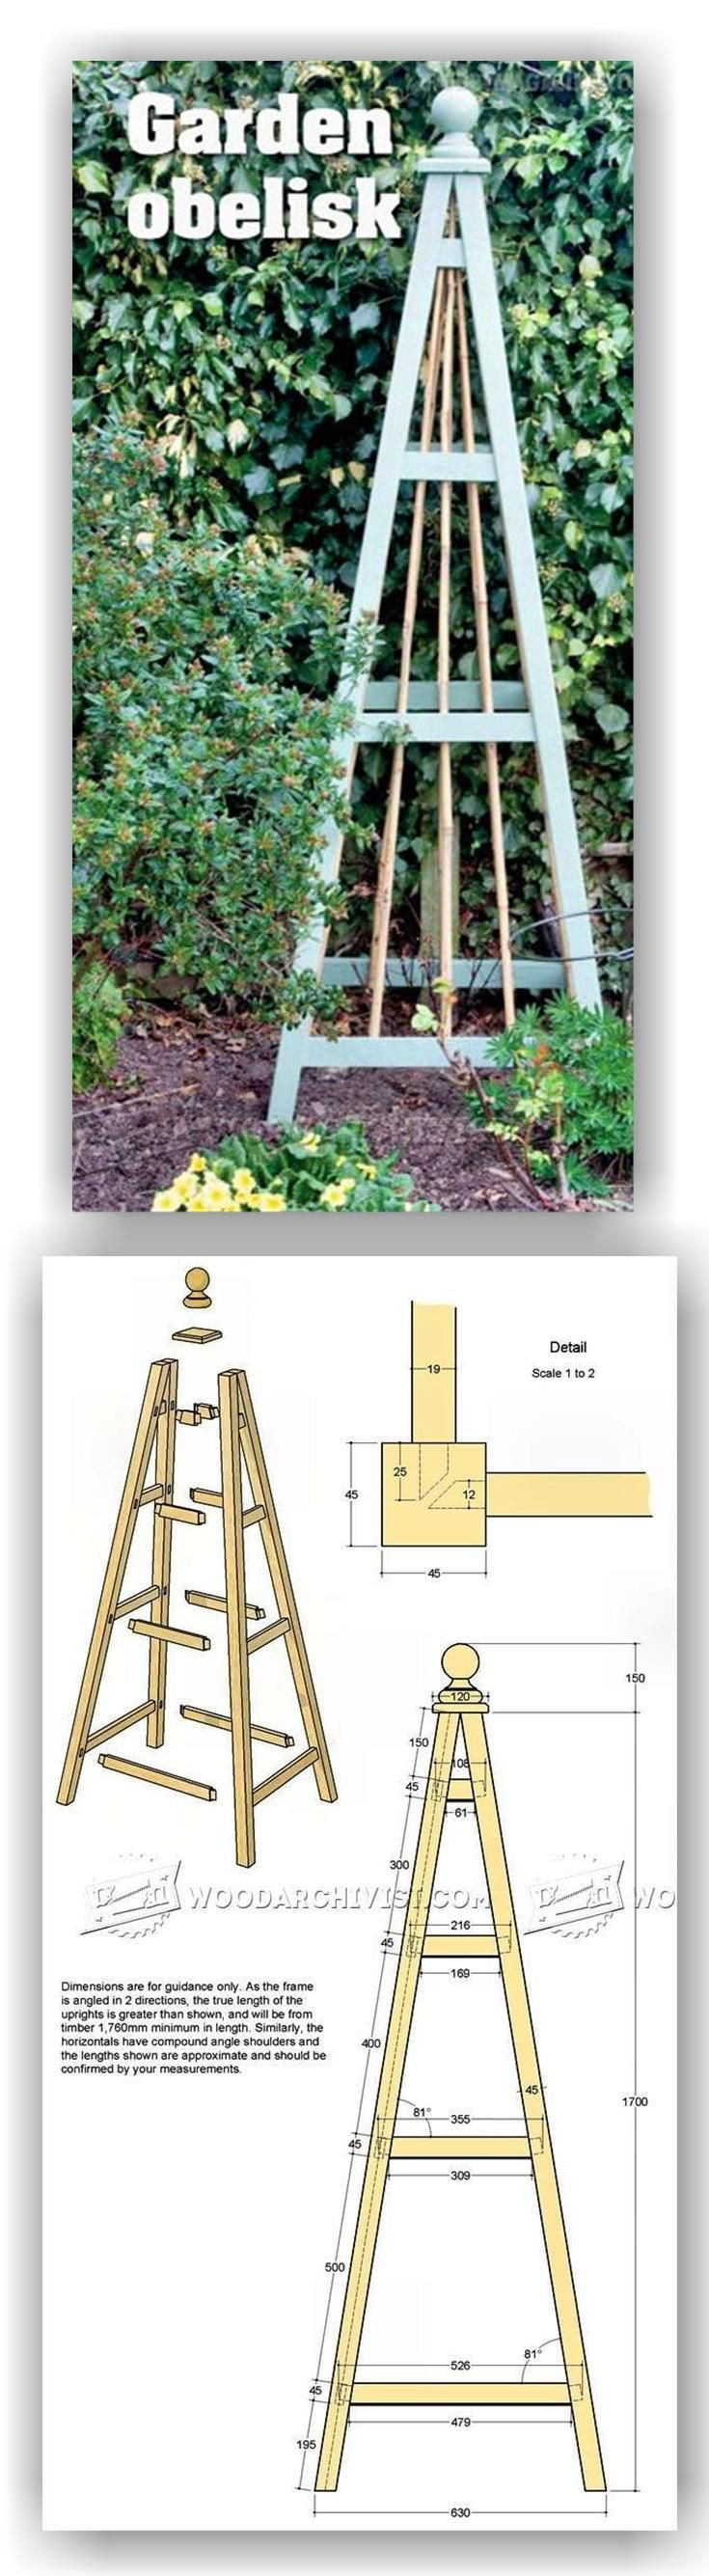 Garden Obelisk Plans Outdoor Plans and Projects